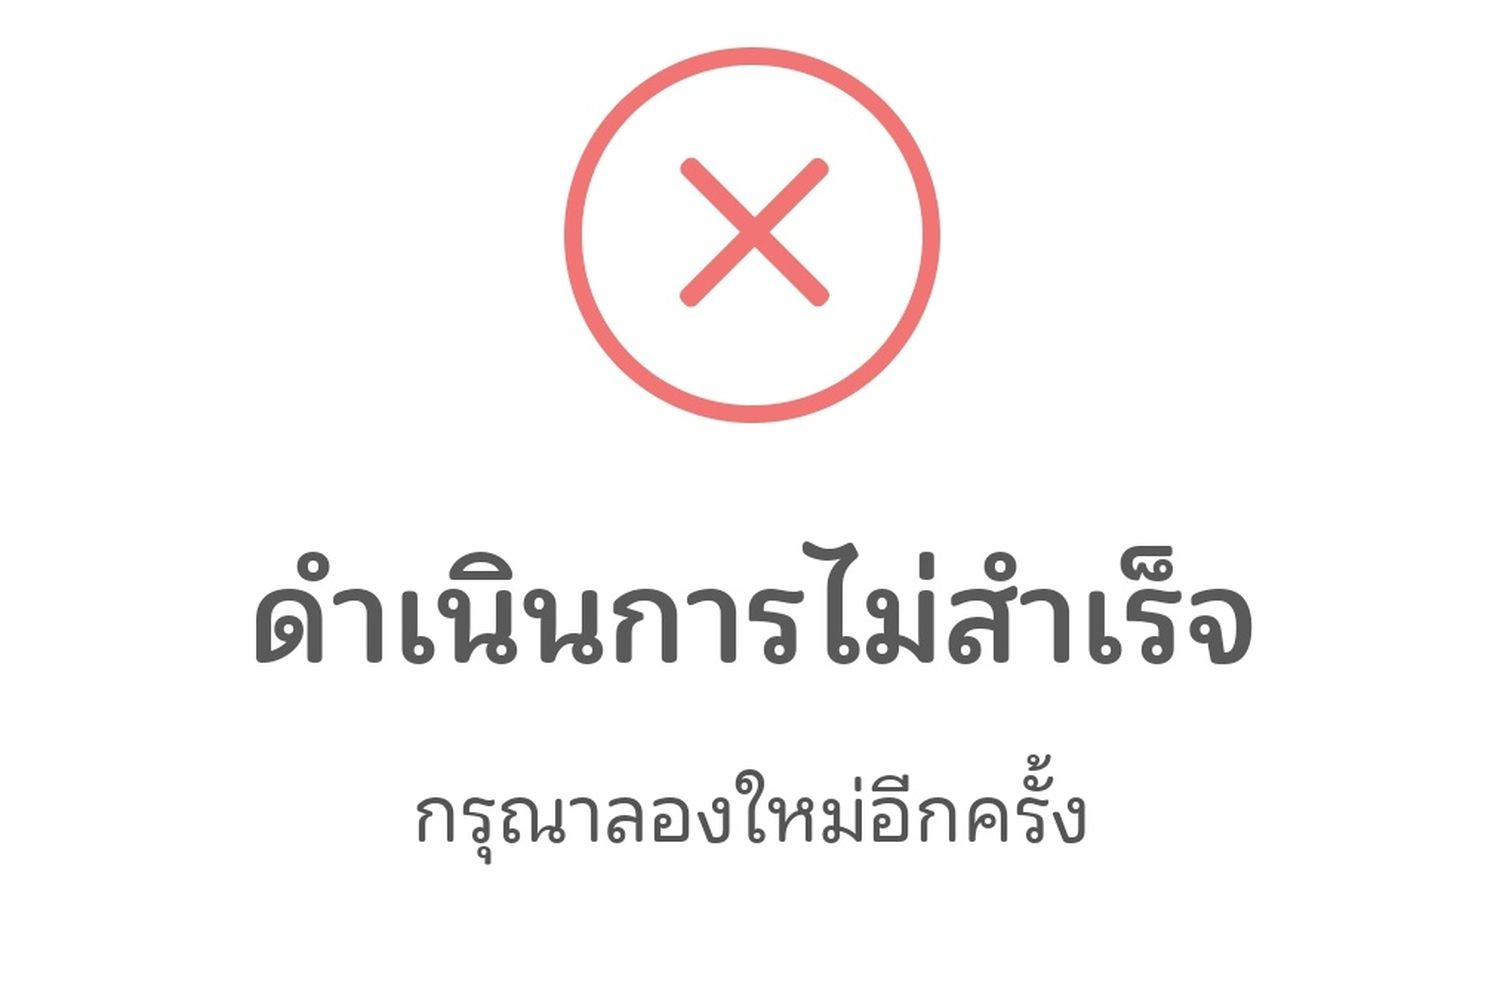 A screen showing registration cannot be done is shown at www.เราไม่ทิ้งกัน.com after the registration opens at 6pm on Saturday.